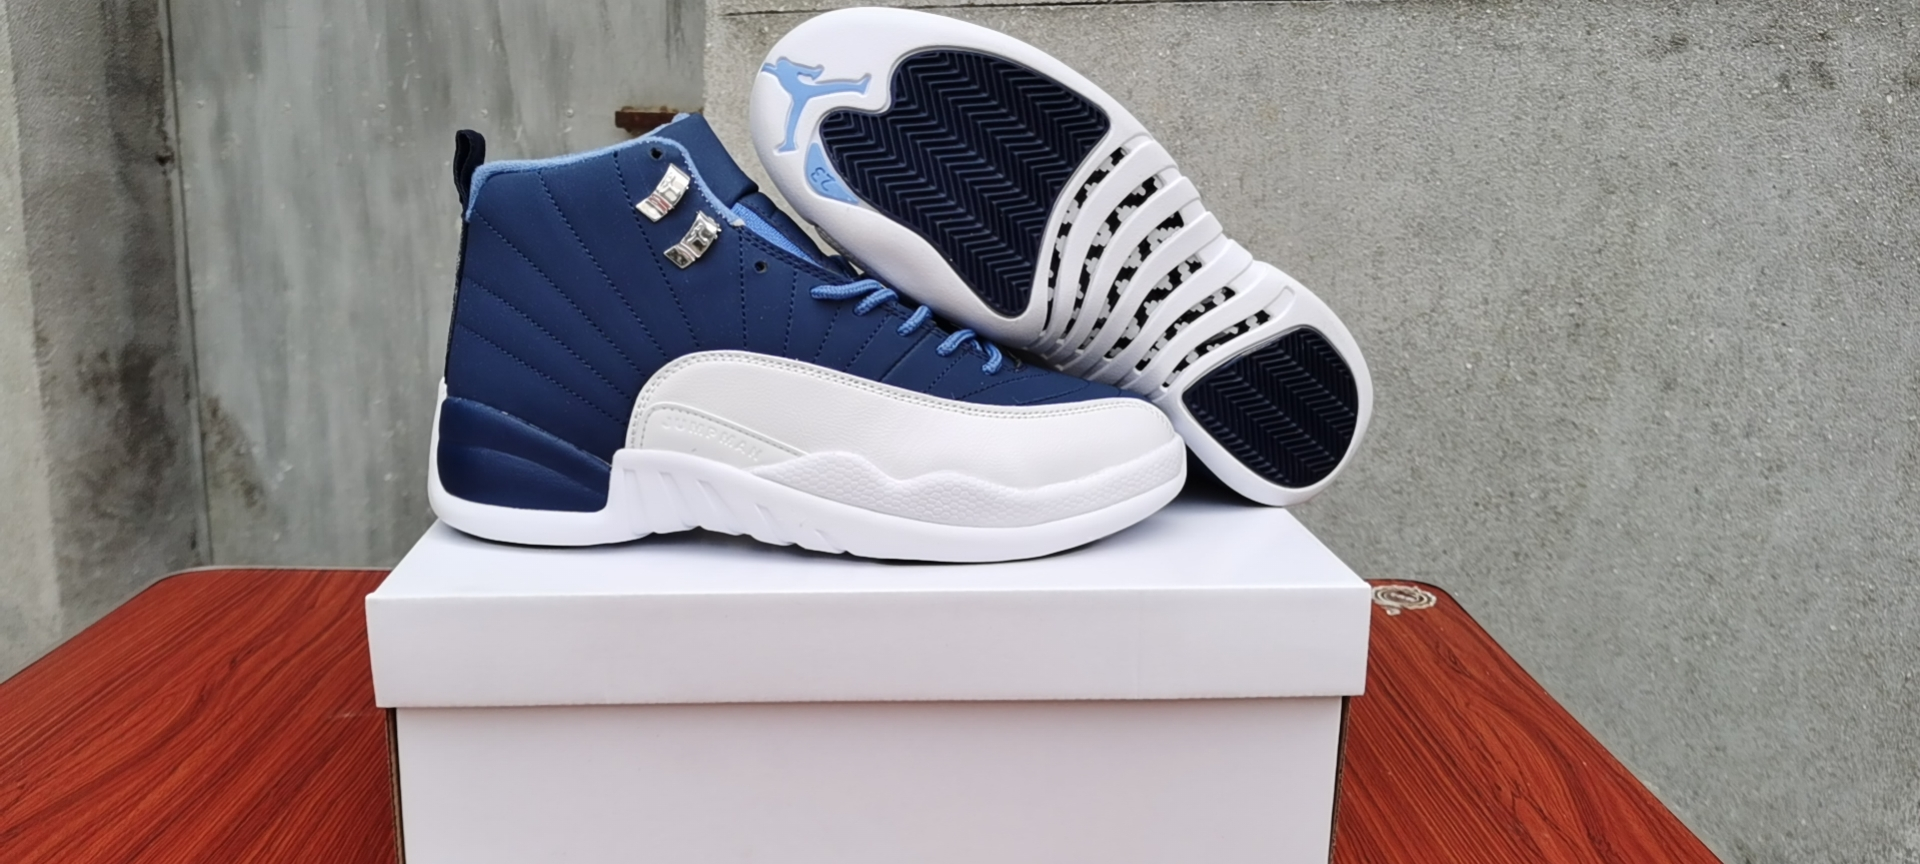 Women 2020 Air Jordan 12 Stone Blue Shoes